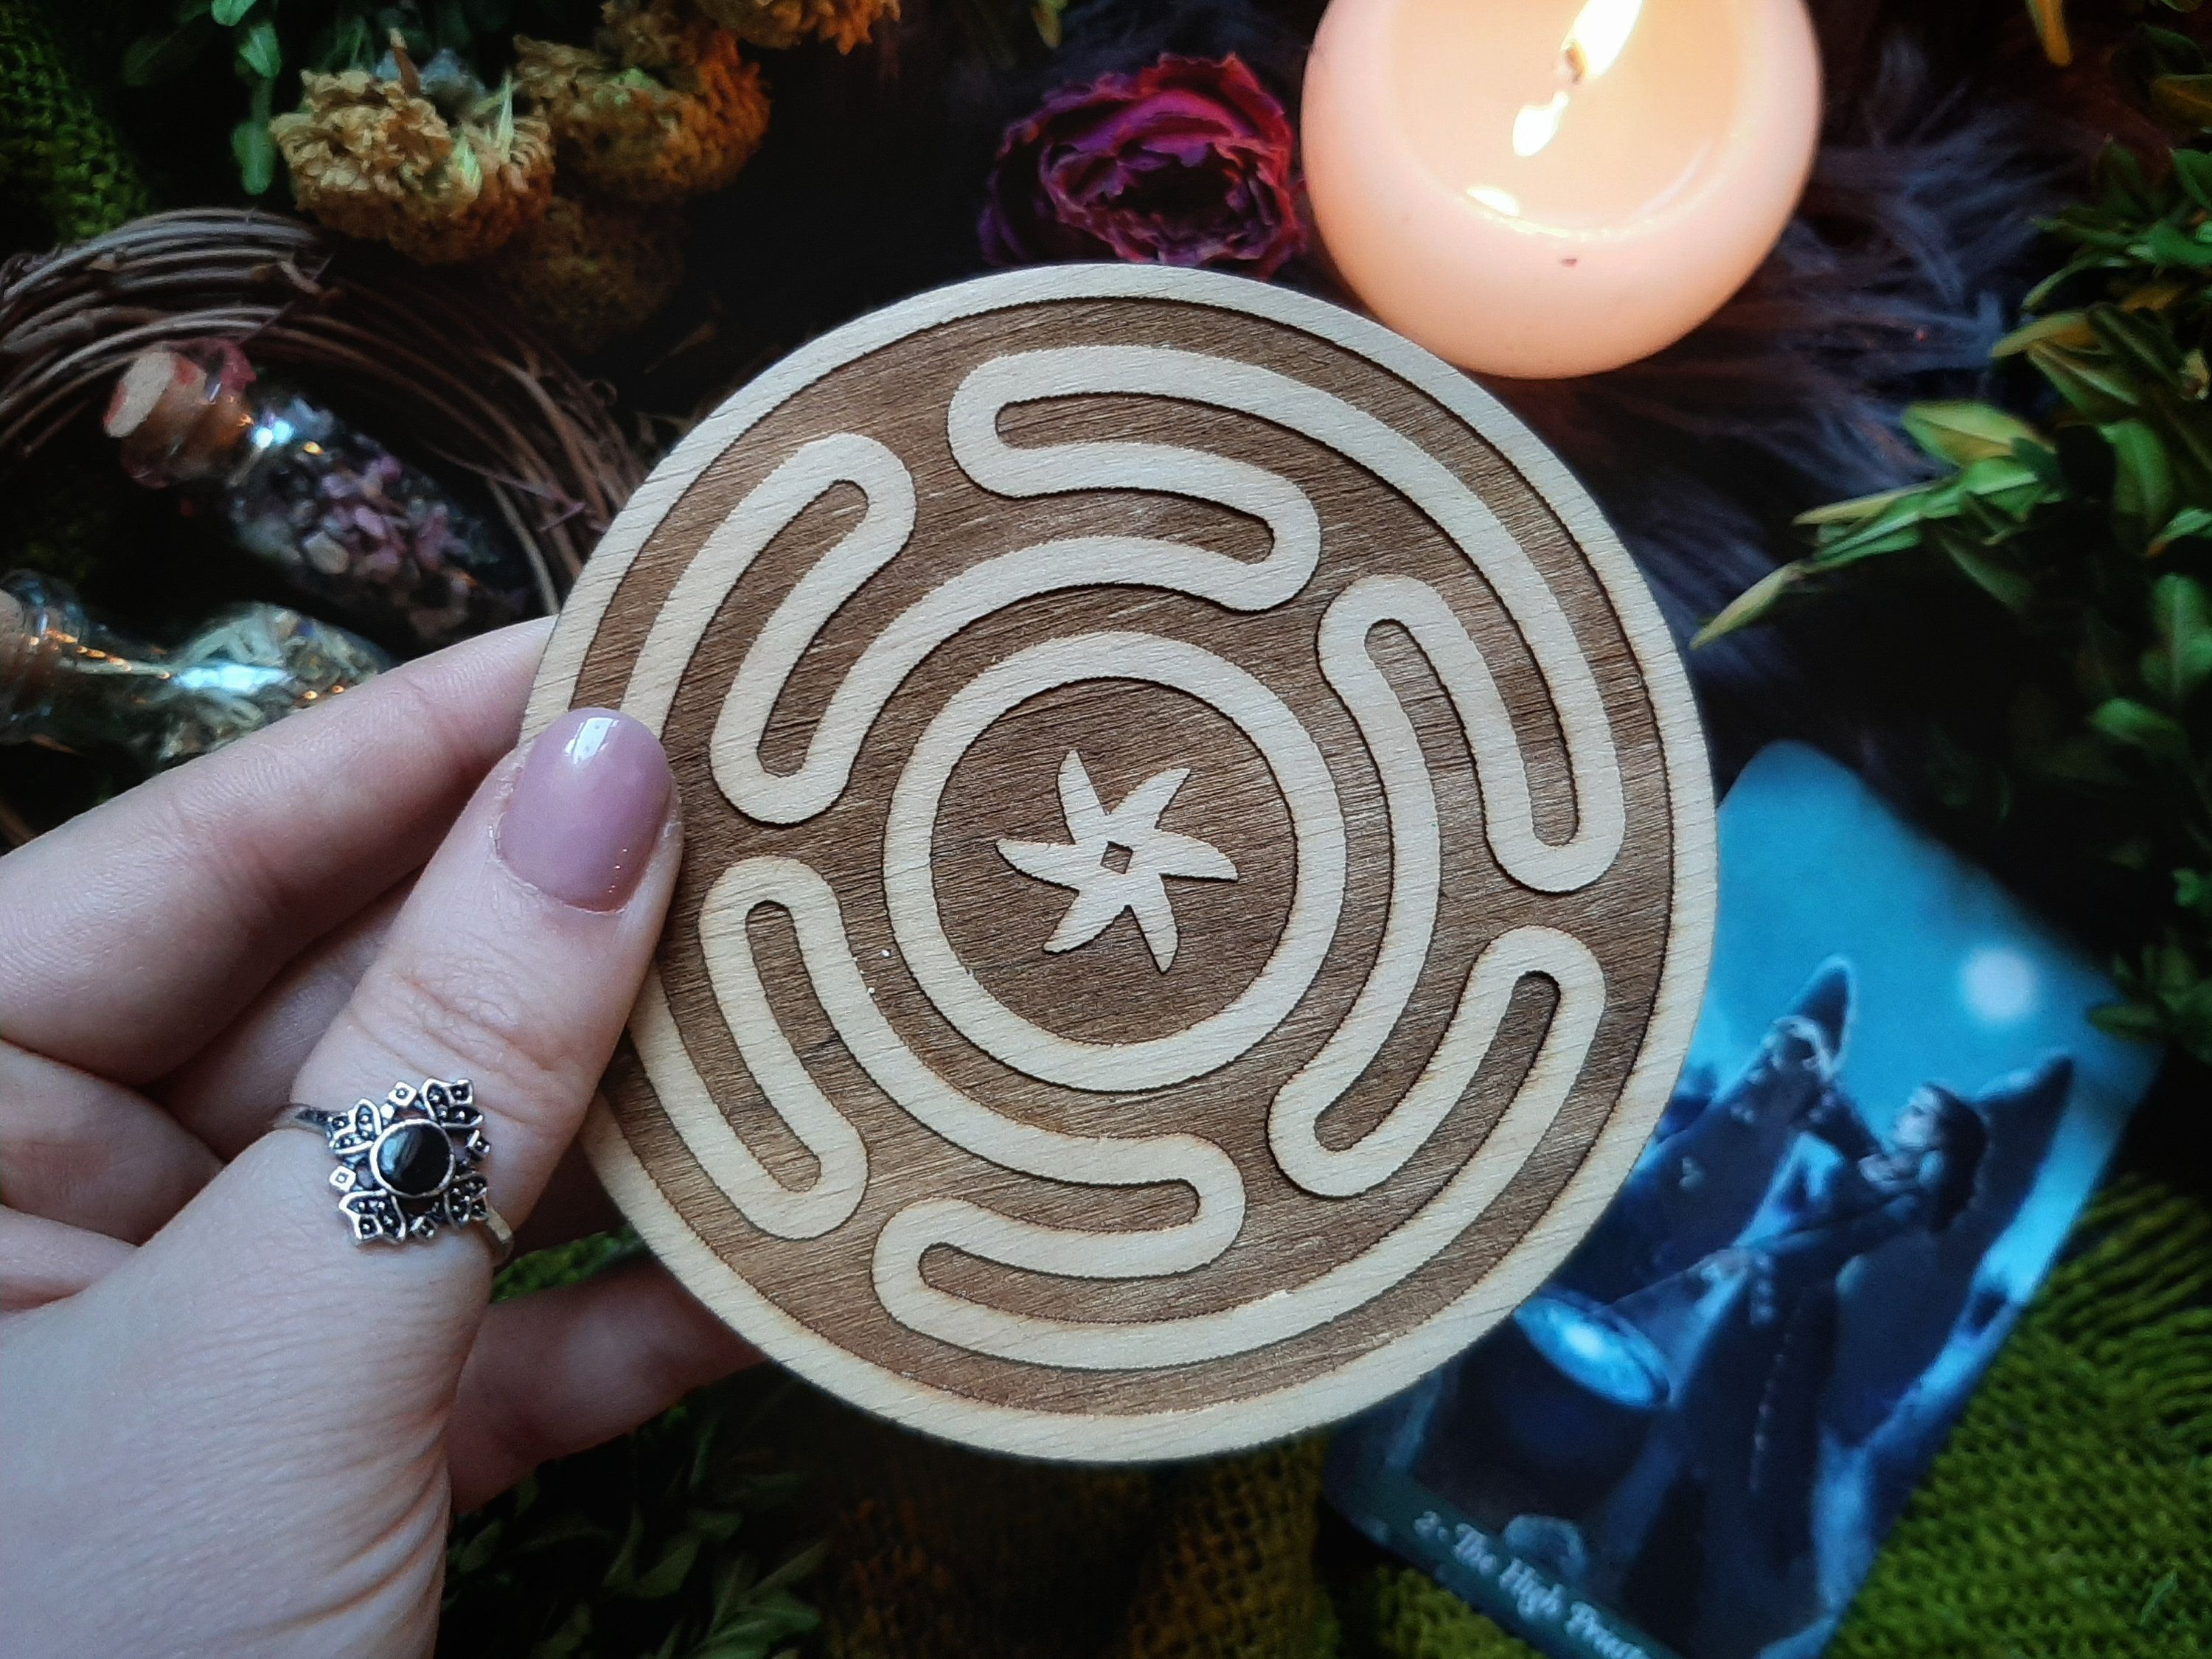 Hecate Wheel Labyrinth, Wiccan decor, Hecate's Wheel Wooden Carving, witchcraft supplies, Strophalos